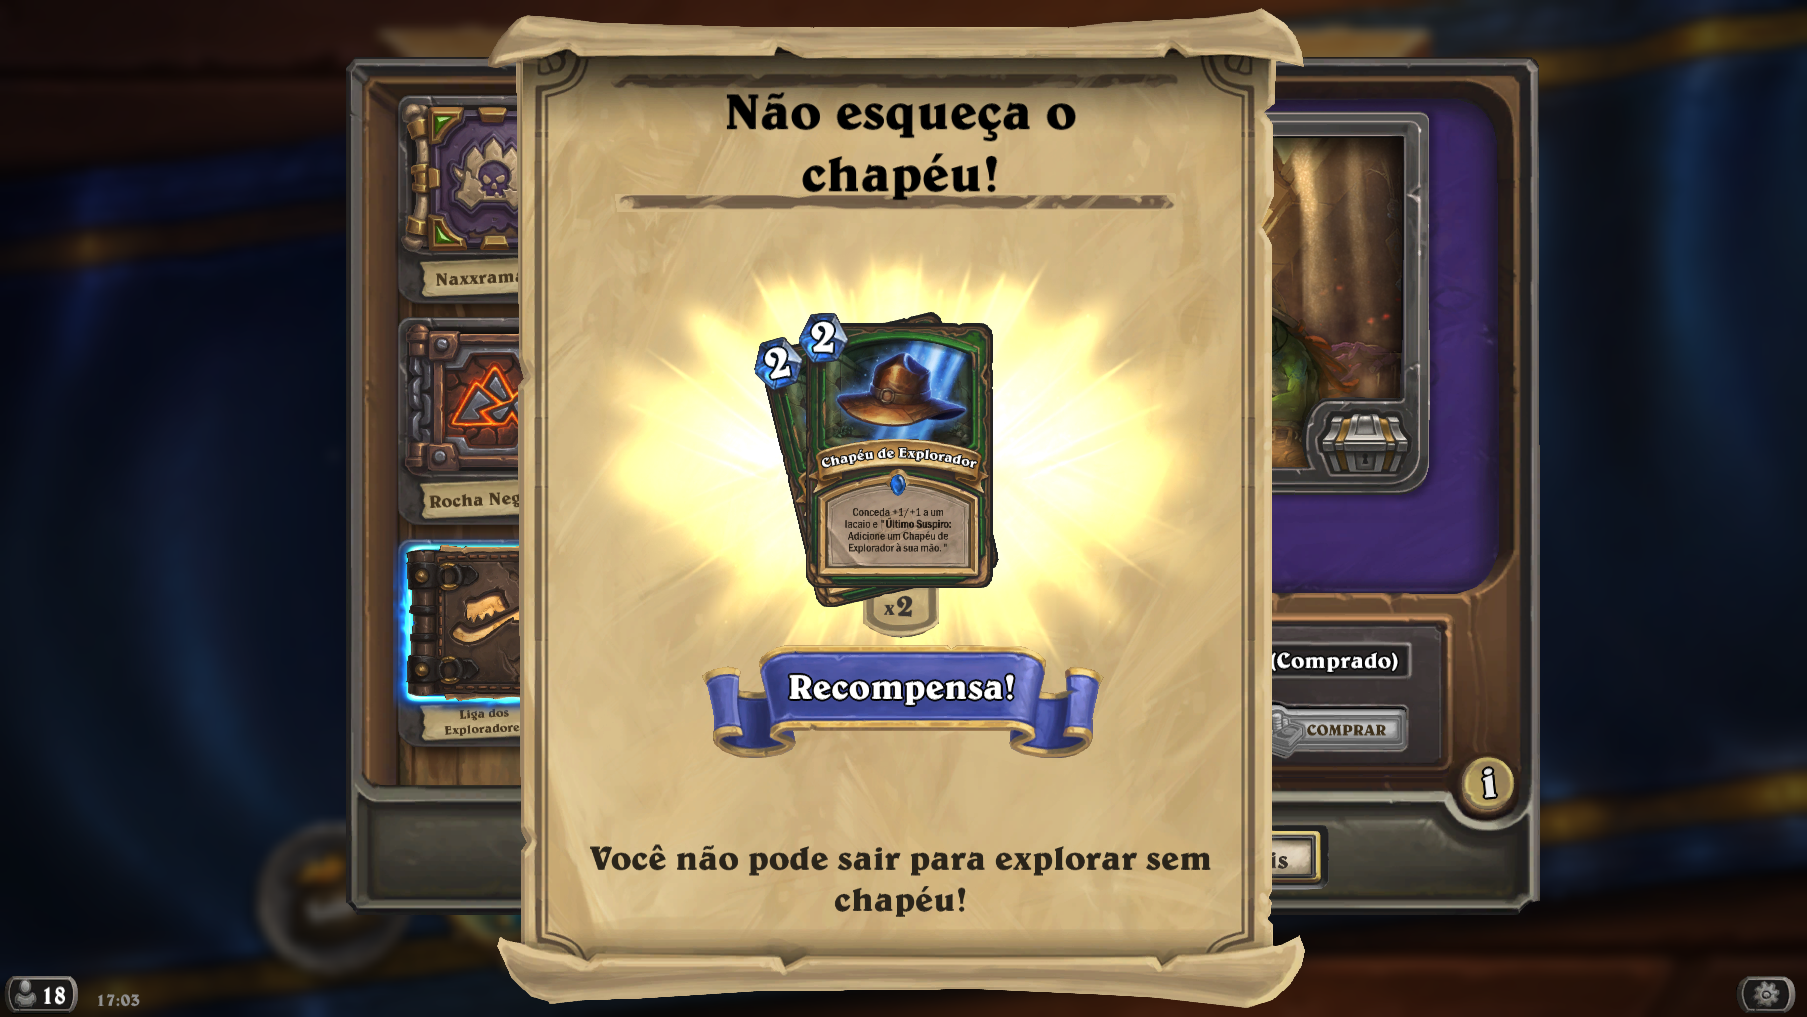 Hearthstone Screenshot 11-10-15 17.03.56